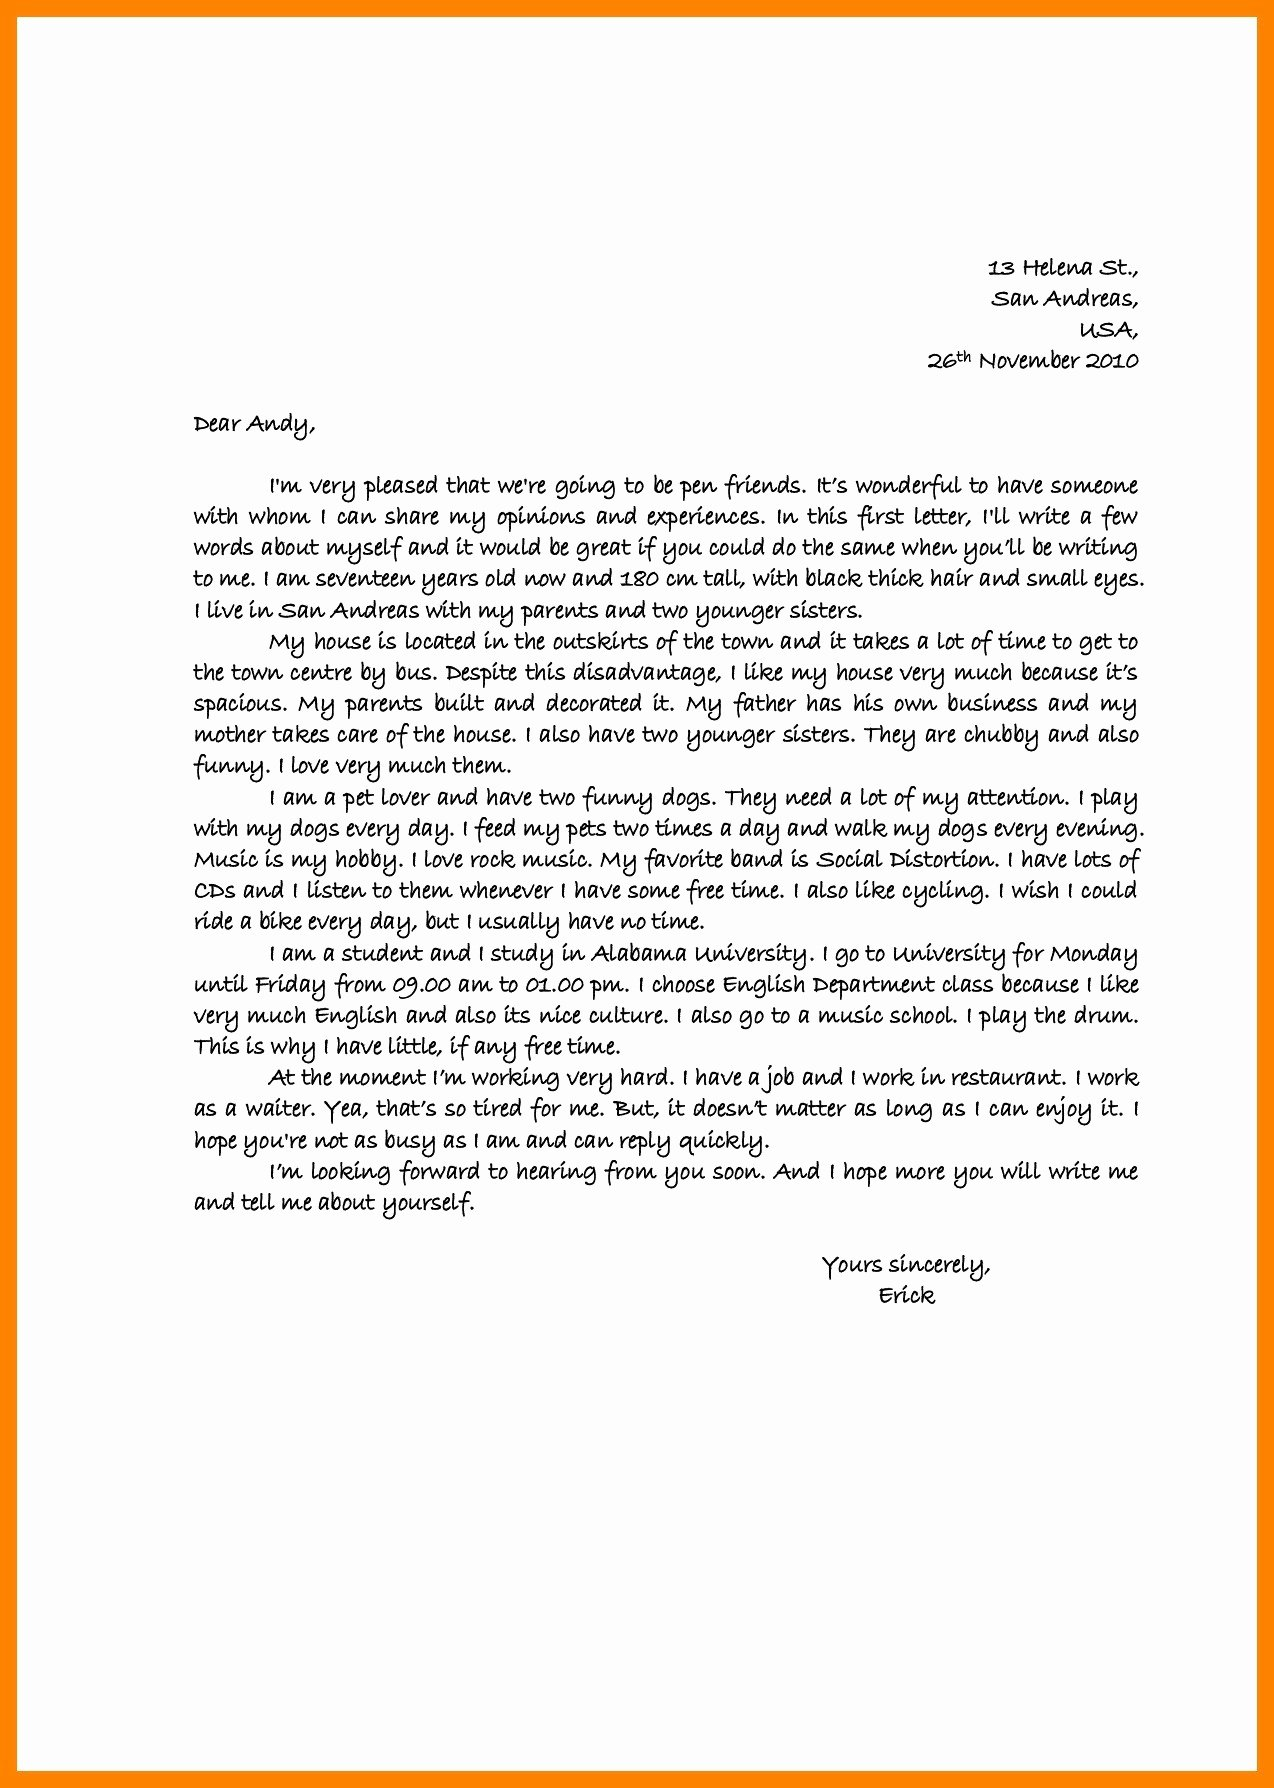 Letter to A Friend format Elegant Proper Letter format to A Friend Business Salutation Fresh